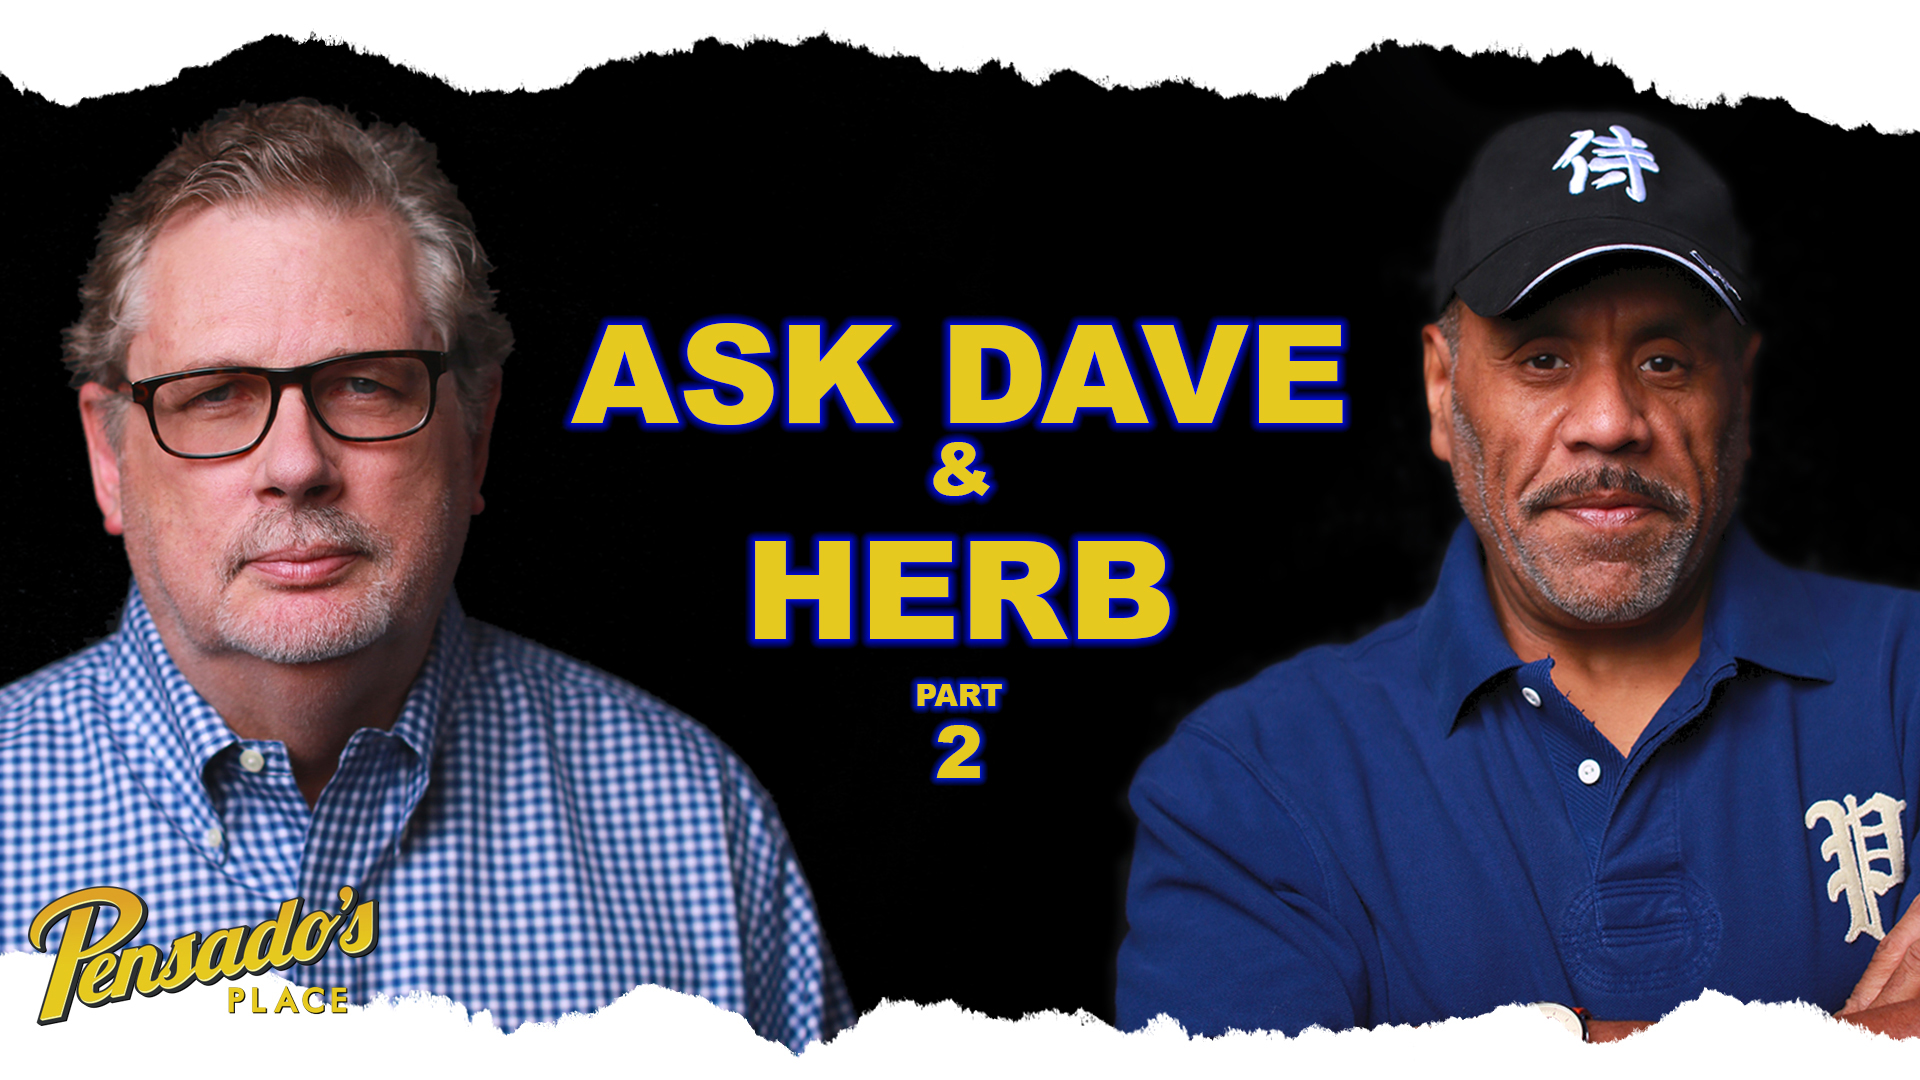 Ask Dave and Herb (Part 2)